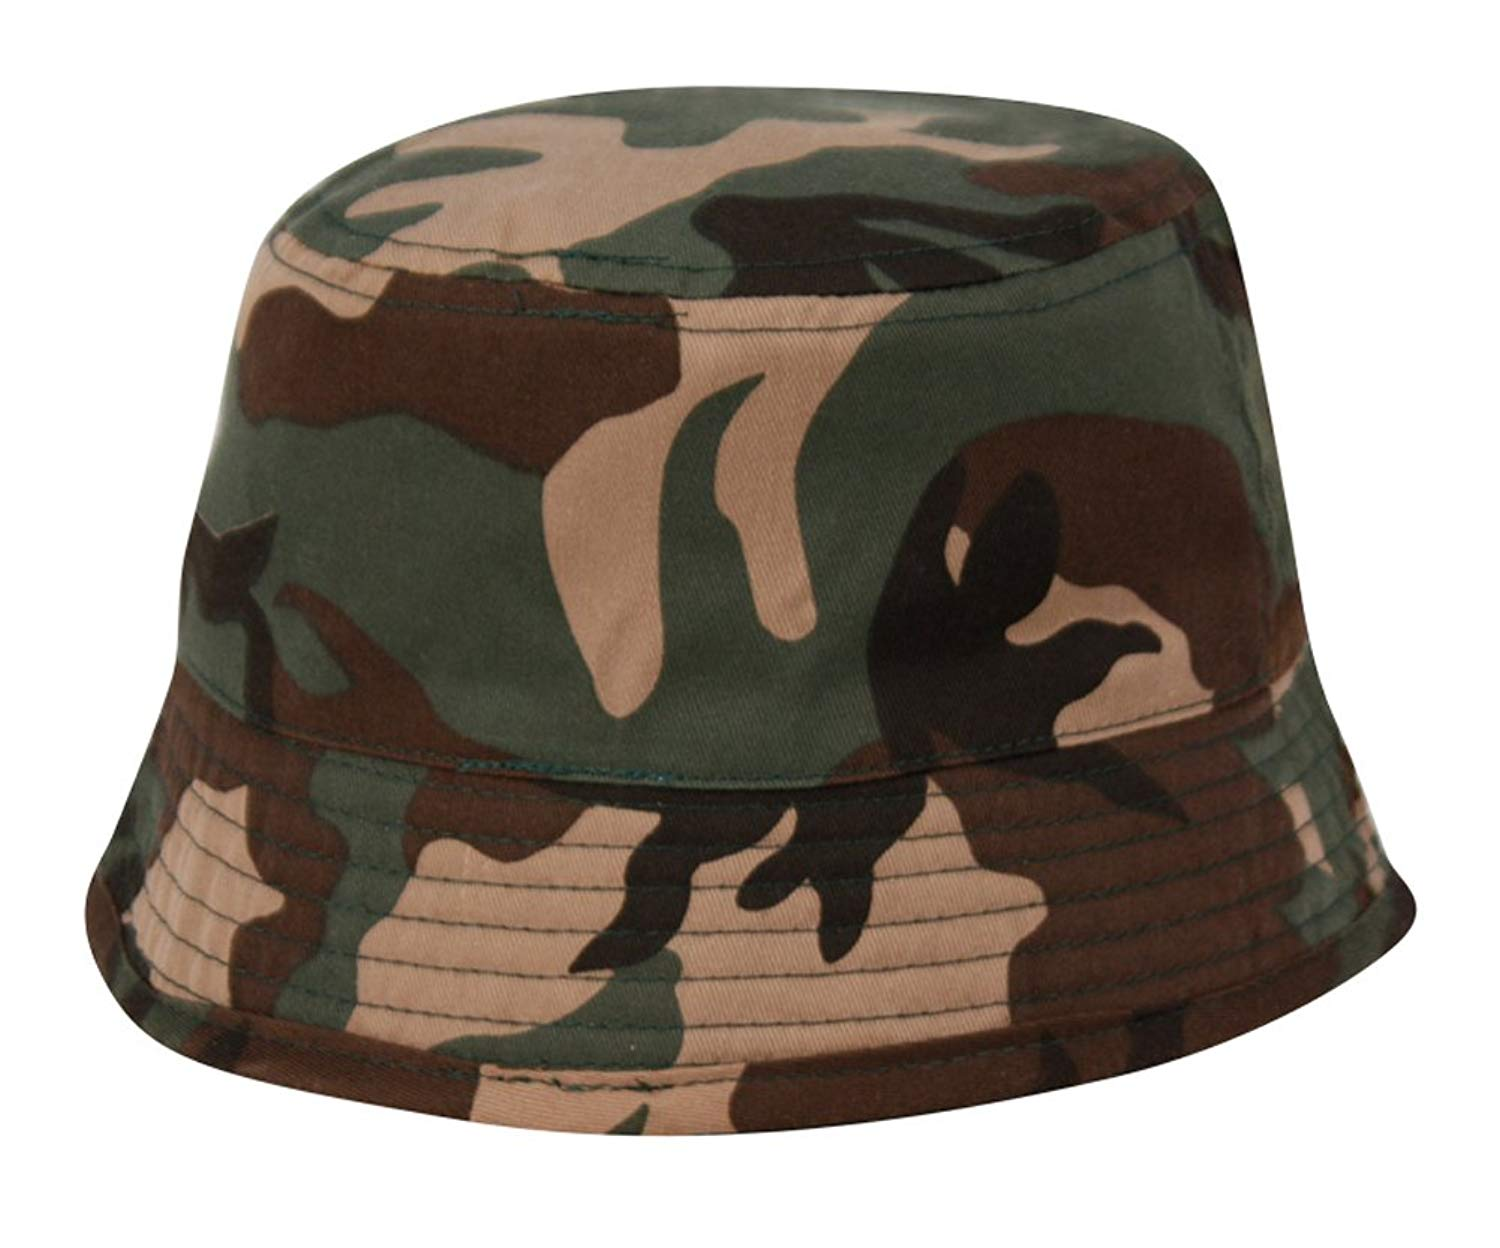 Unisex Indoor/Outdoor Kids Camo Bucket Hat